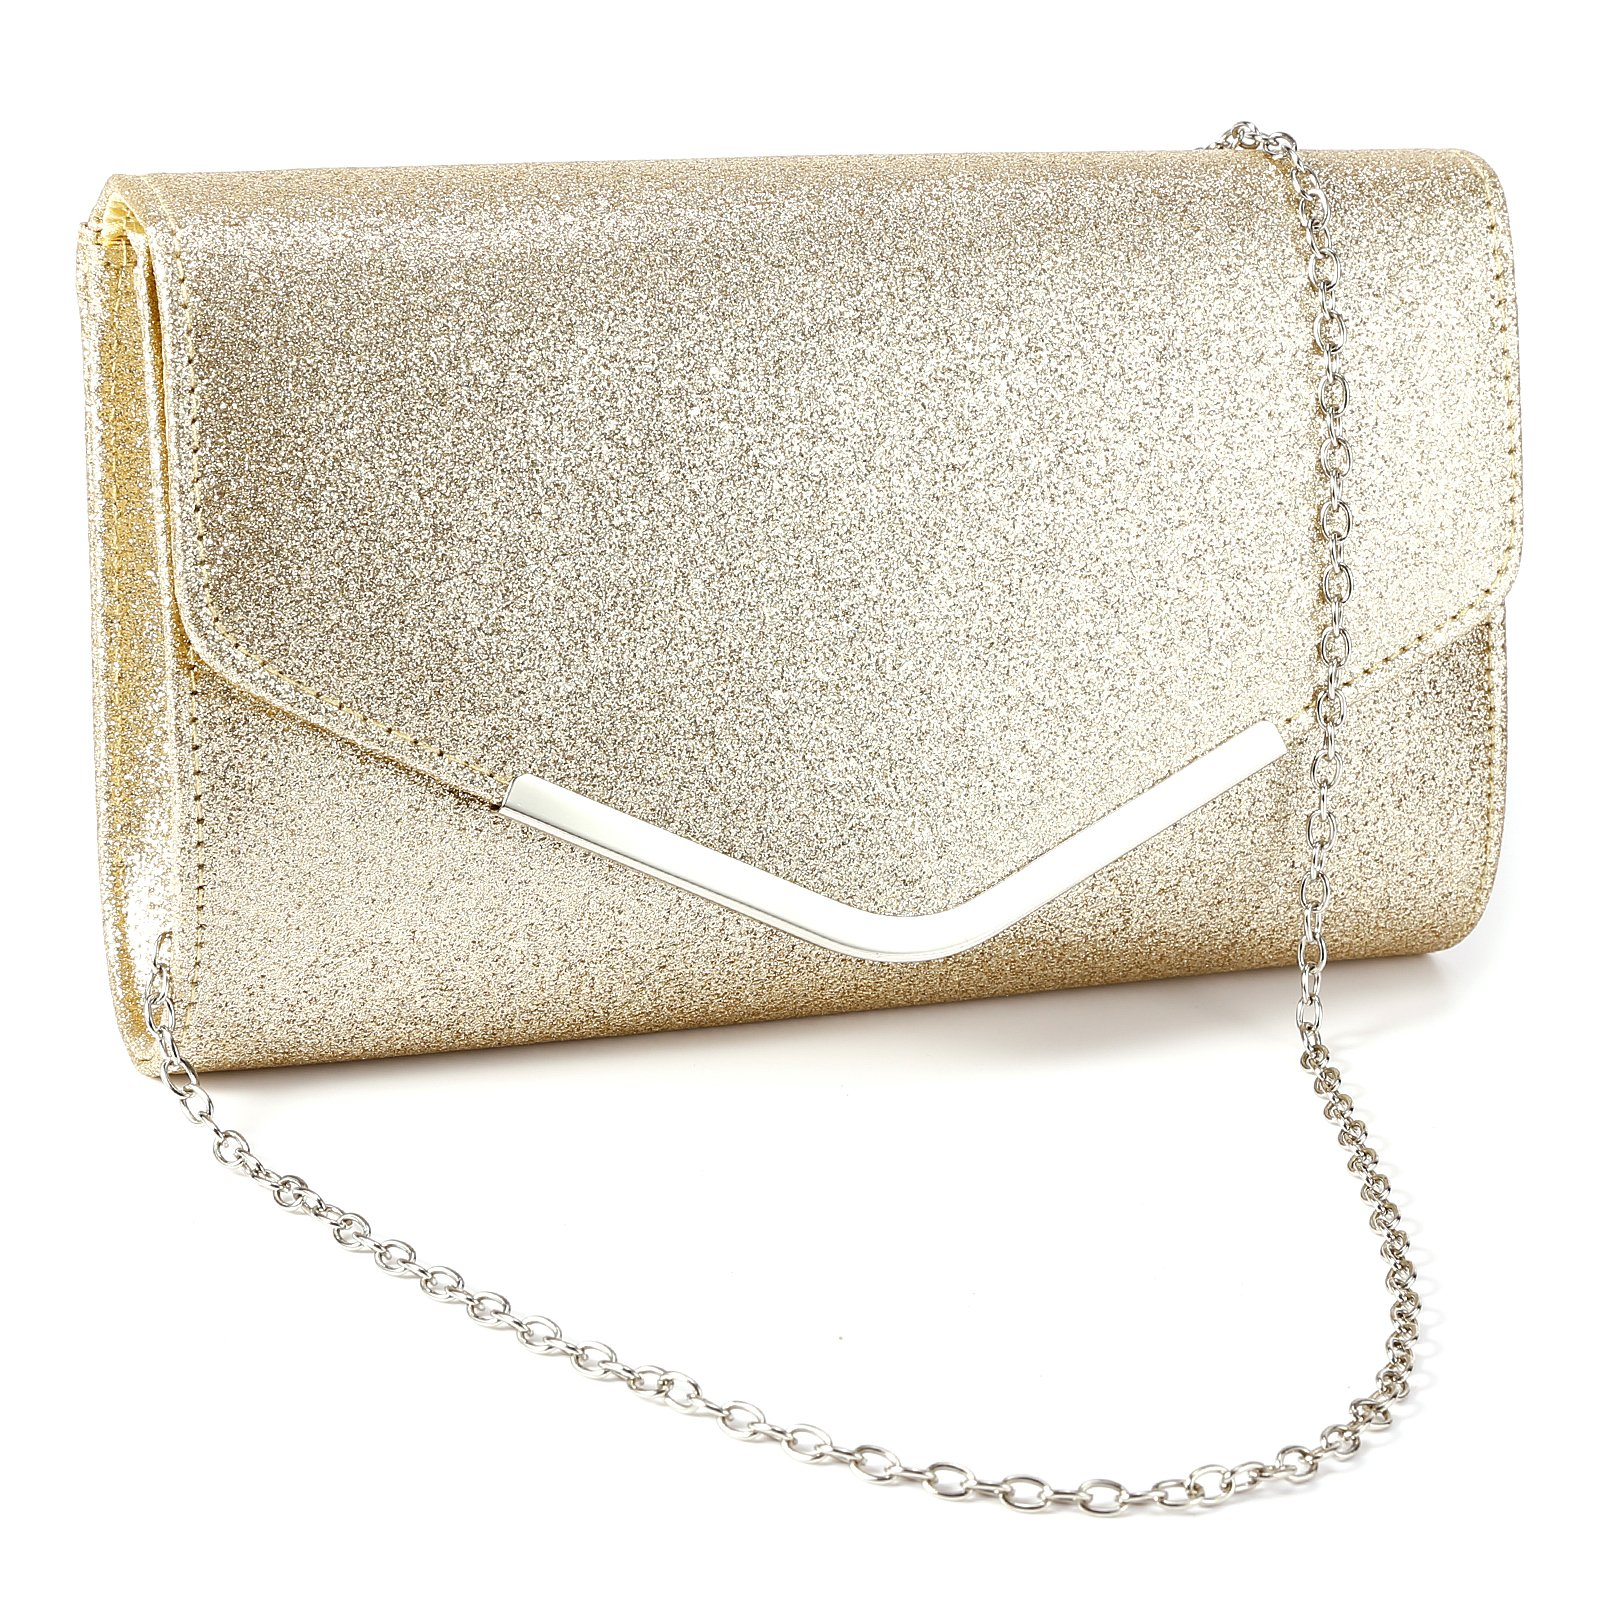 Anladia Metal-Tipped Purse Sparkle Glittered Envelope Clutch Bag Bridal Prom Party Purse by Anladia (Image #1)